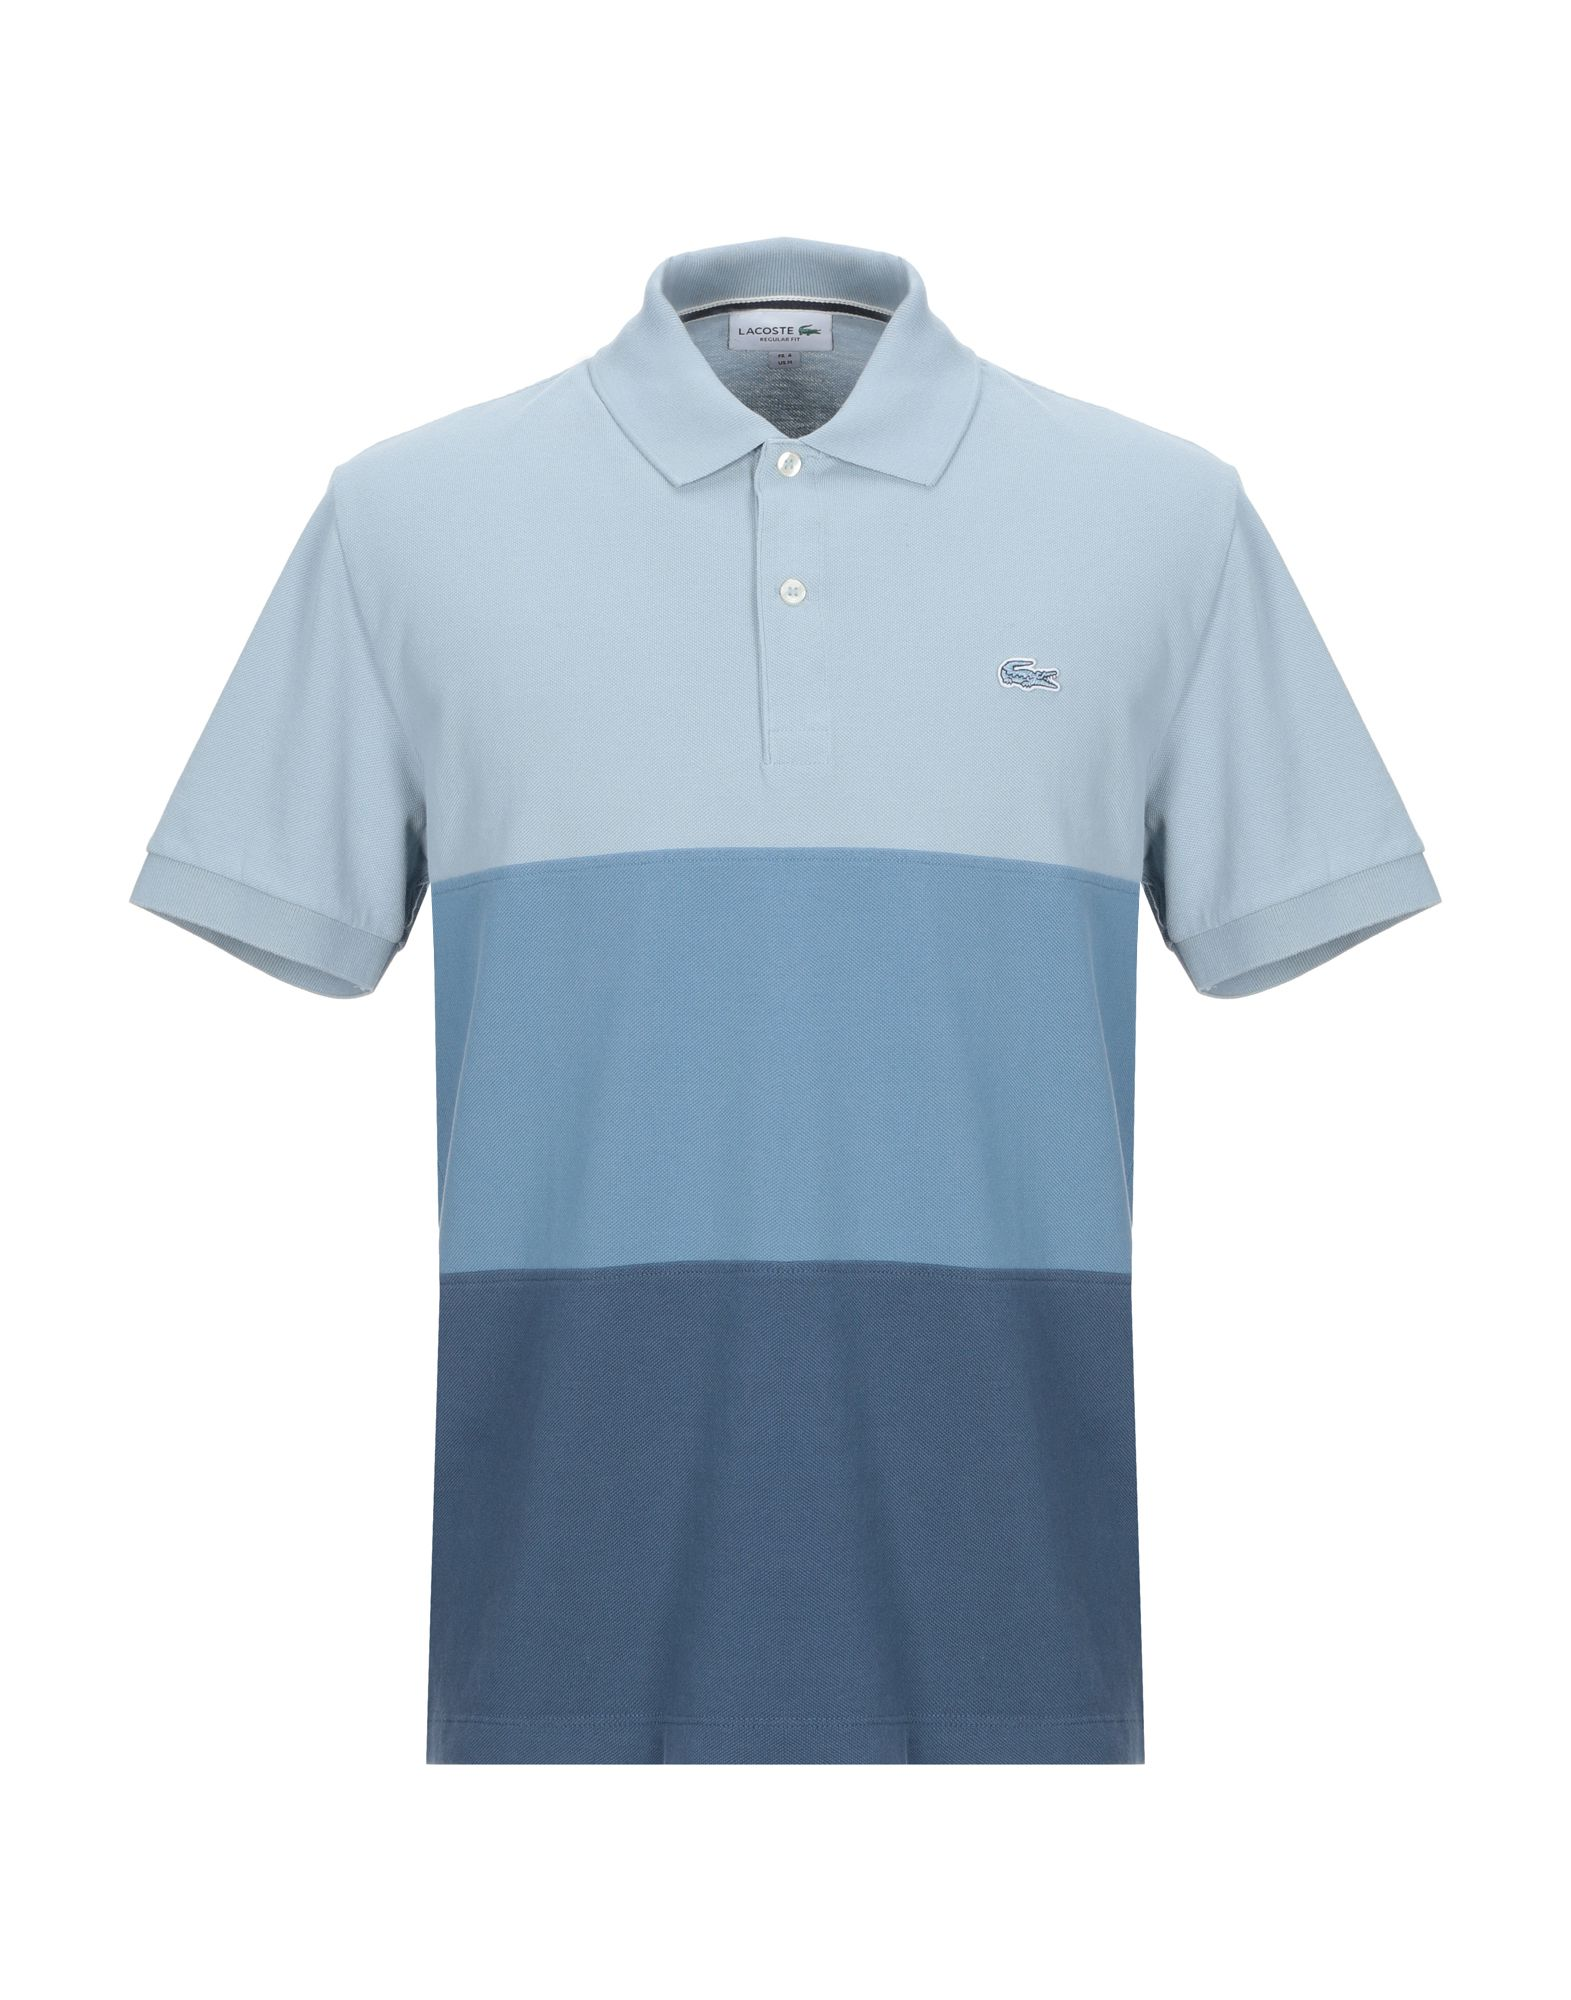 0d9ae80f LACOSTE Polo shirt - T-Shirts and Tops | YOOX.COM